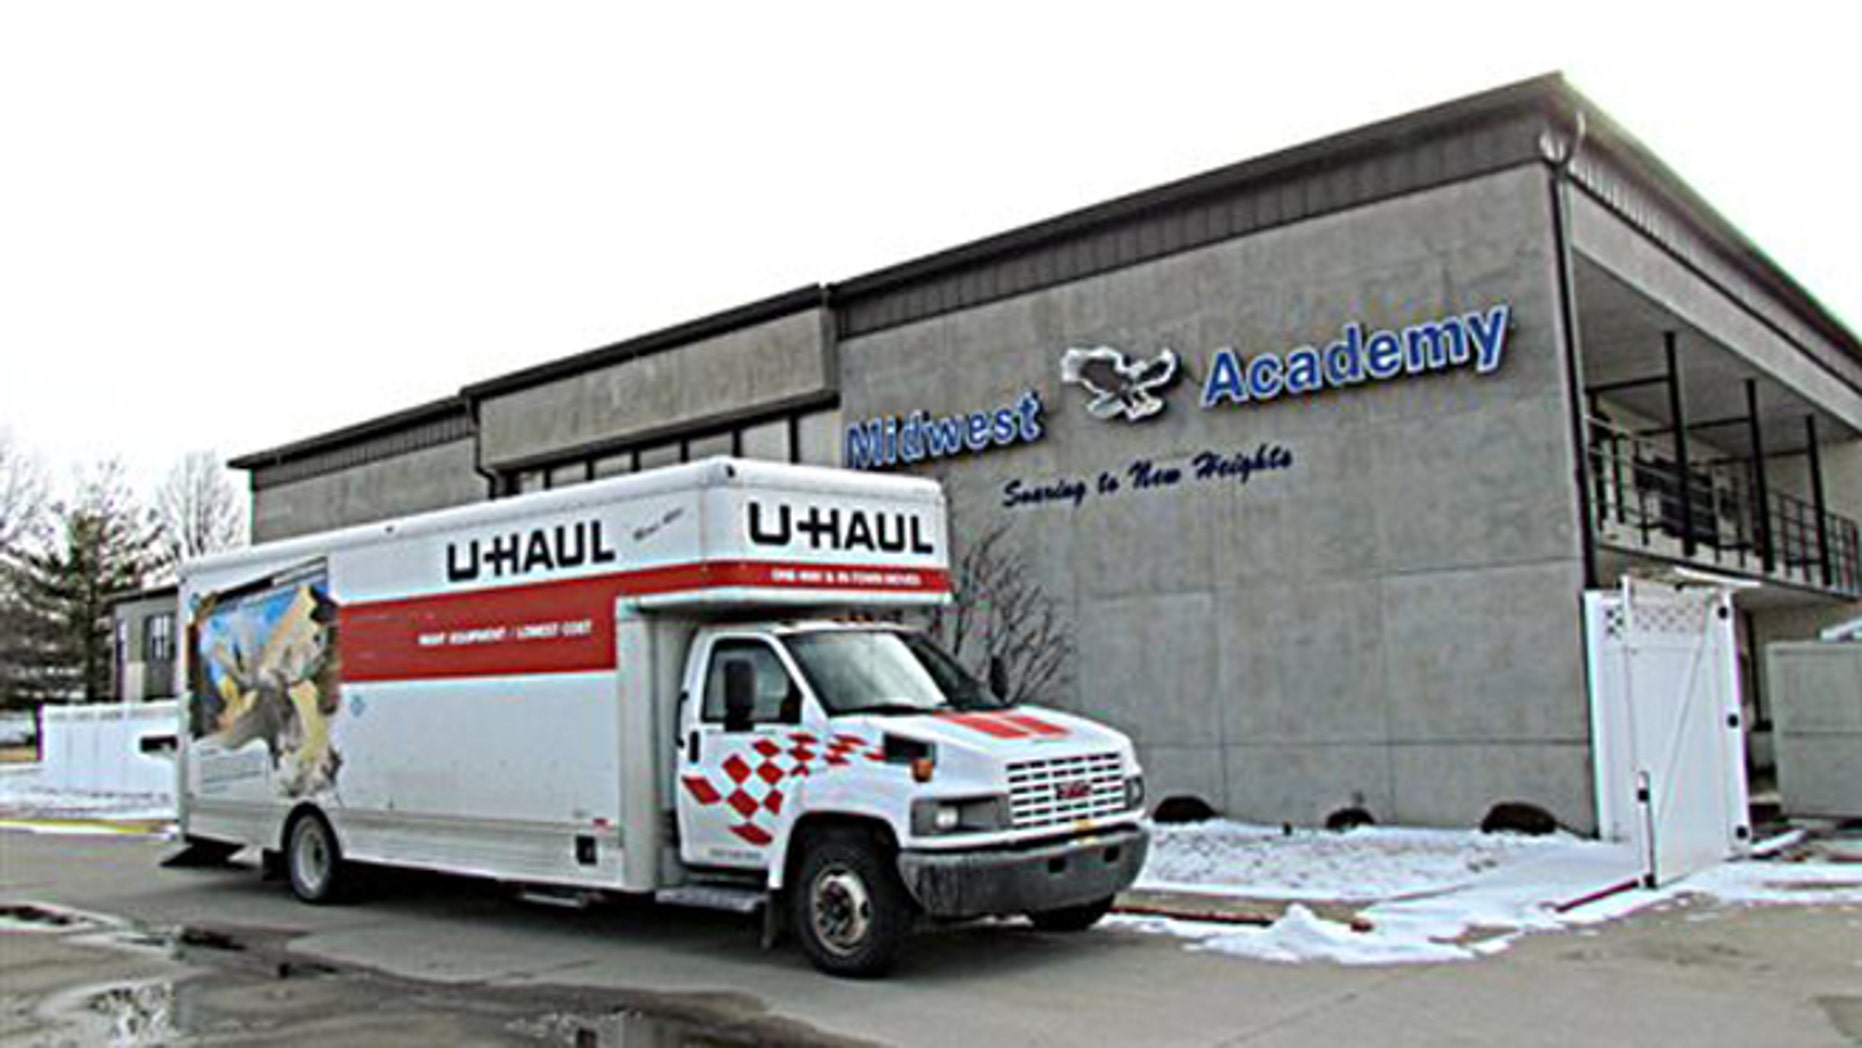 Photo taken Thursday, Feb. 11, 2016, shows a U-Haul outside Midwest Academy in Keokuk, Iowa. (Cindy Iutzi/Daily Gate City via AP)